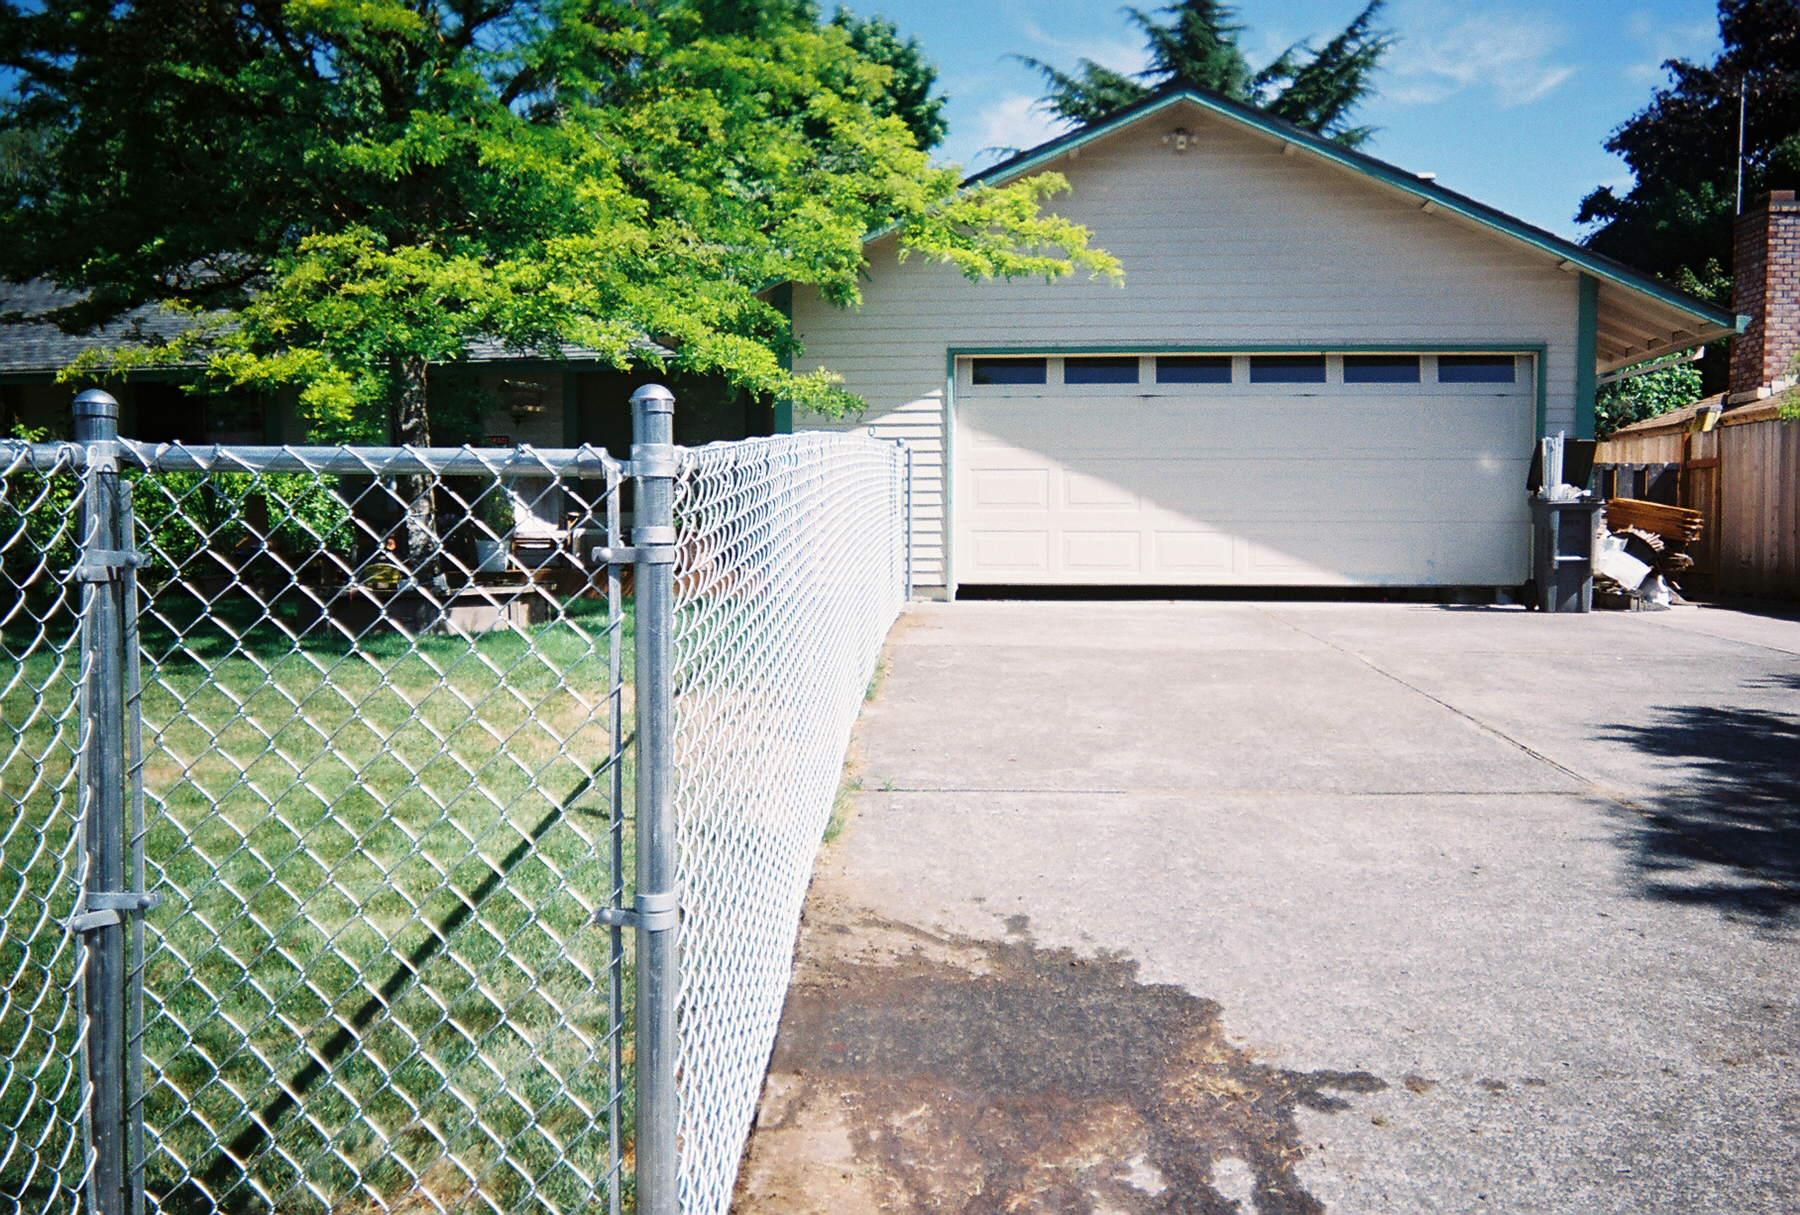 Front Yard Chain Link Fences does not allow your pets to roam free, keeping them safe and giving you peace of mind. Contact Vancouver Washington's Best Fence Builders. The Fenceman Fence Company installs wood, vinyl, chain link and ornamental iron fences. We also offer materials for the do it yourselfer.